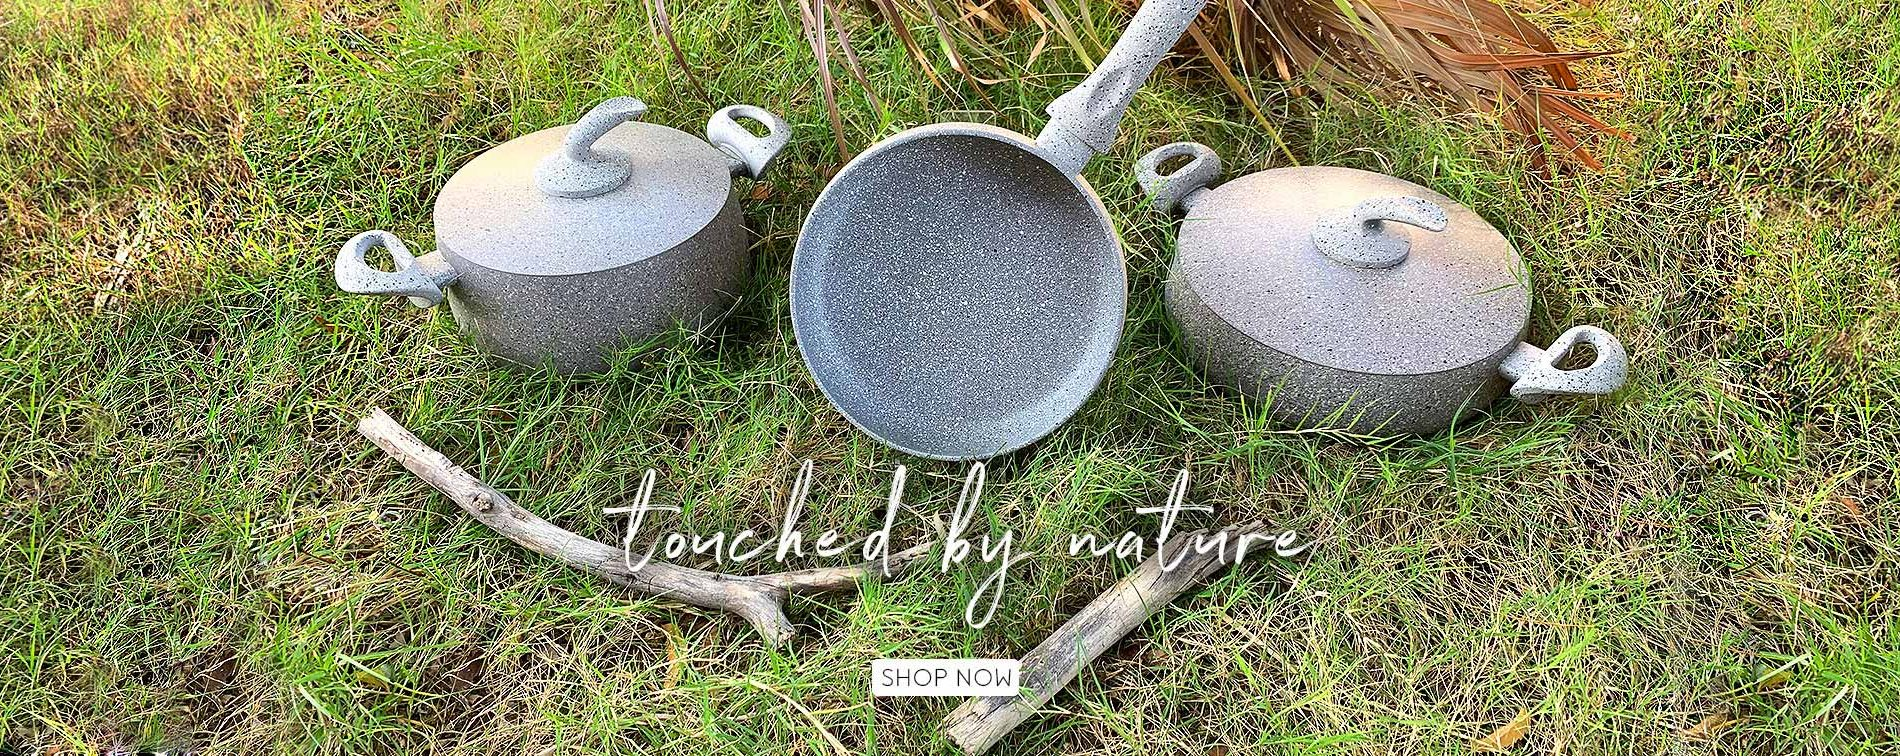 Rossetti Cookware Touched by Nature